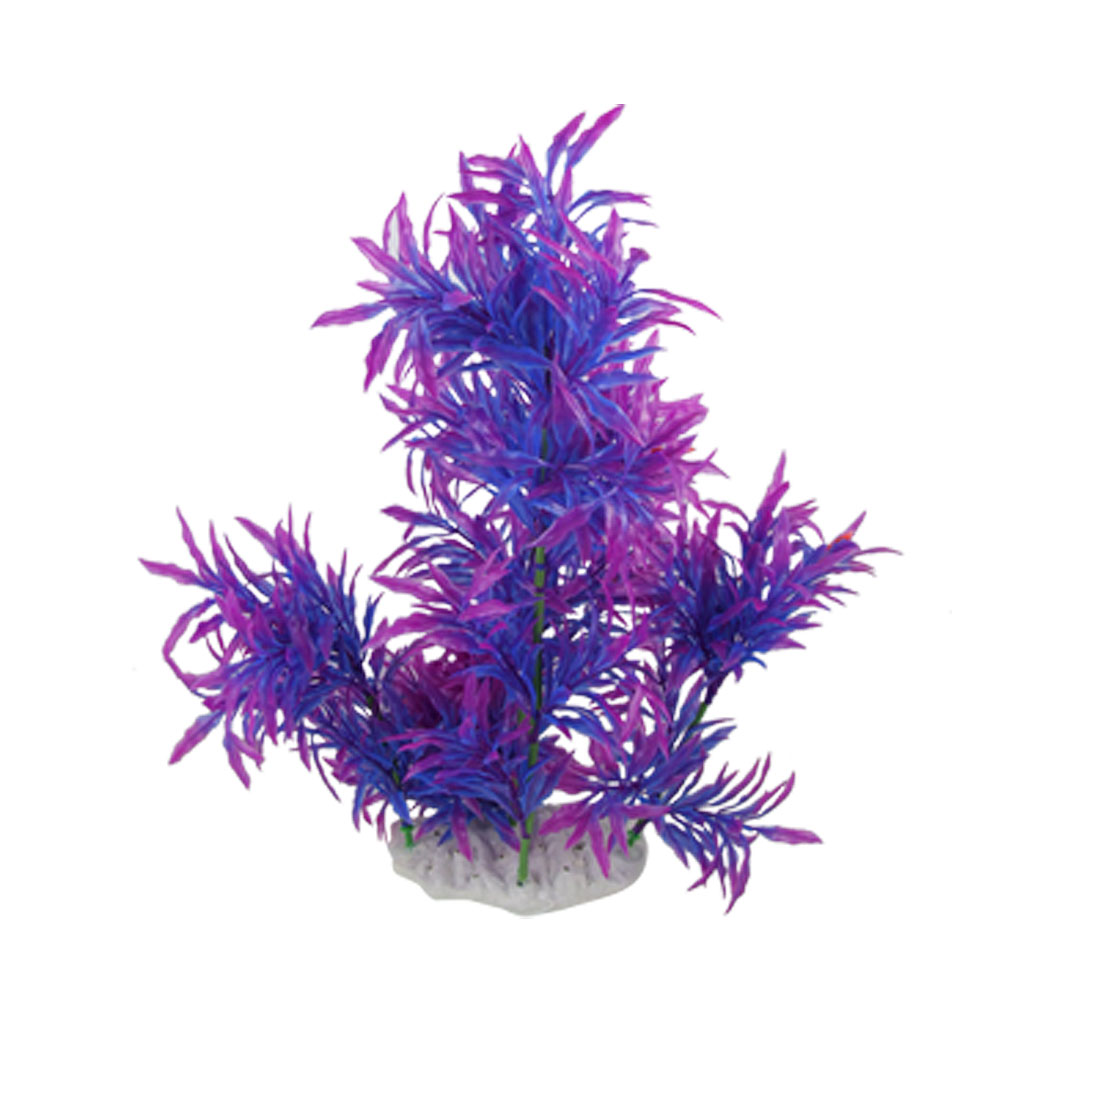 "15"" High Plastic Ludwigia Aquatic Plant for Fish Tank Decor"